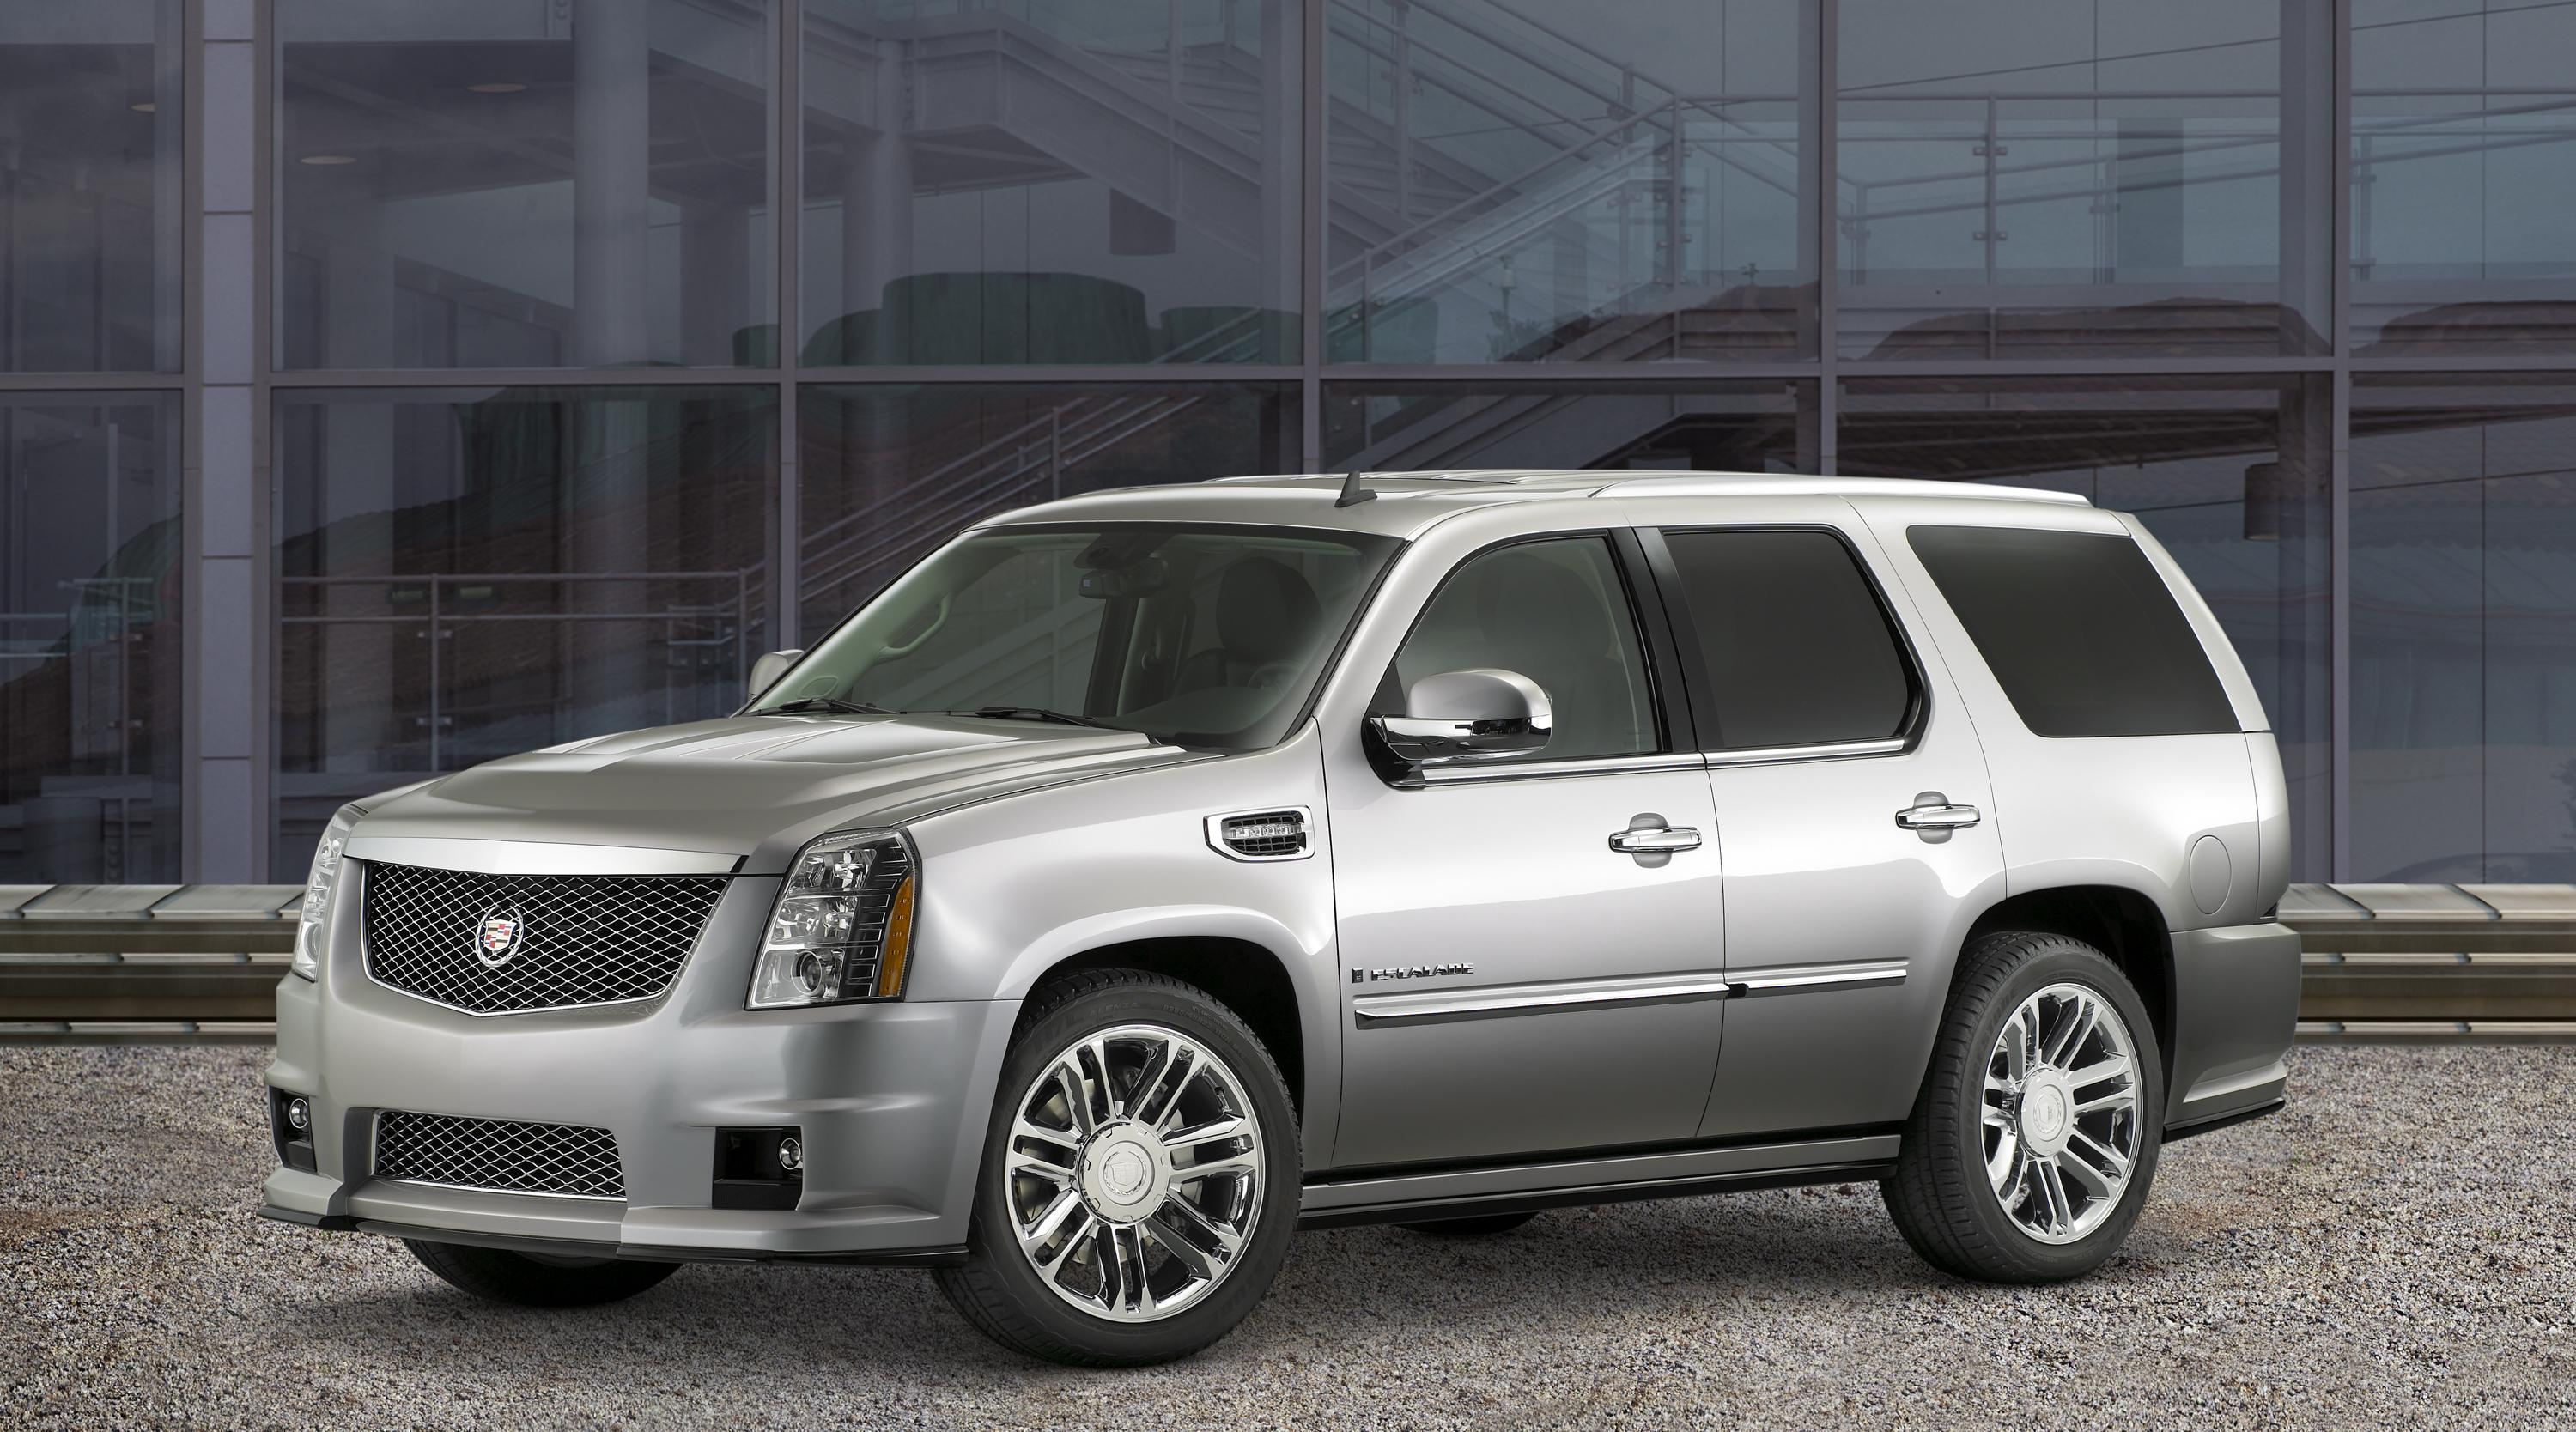 2008 cadillac escalade sport review top speed. Black Bedroom Furniture Sets. Home Design Ideas